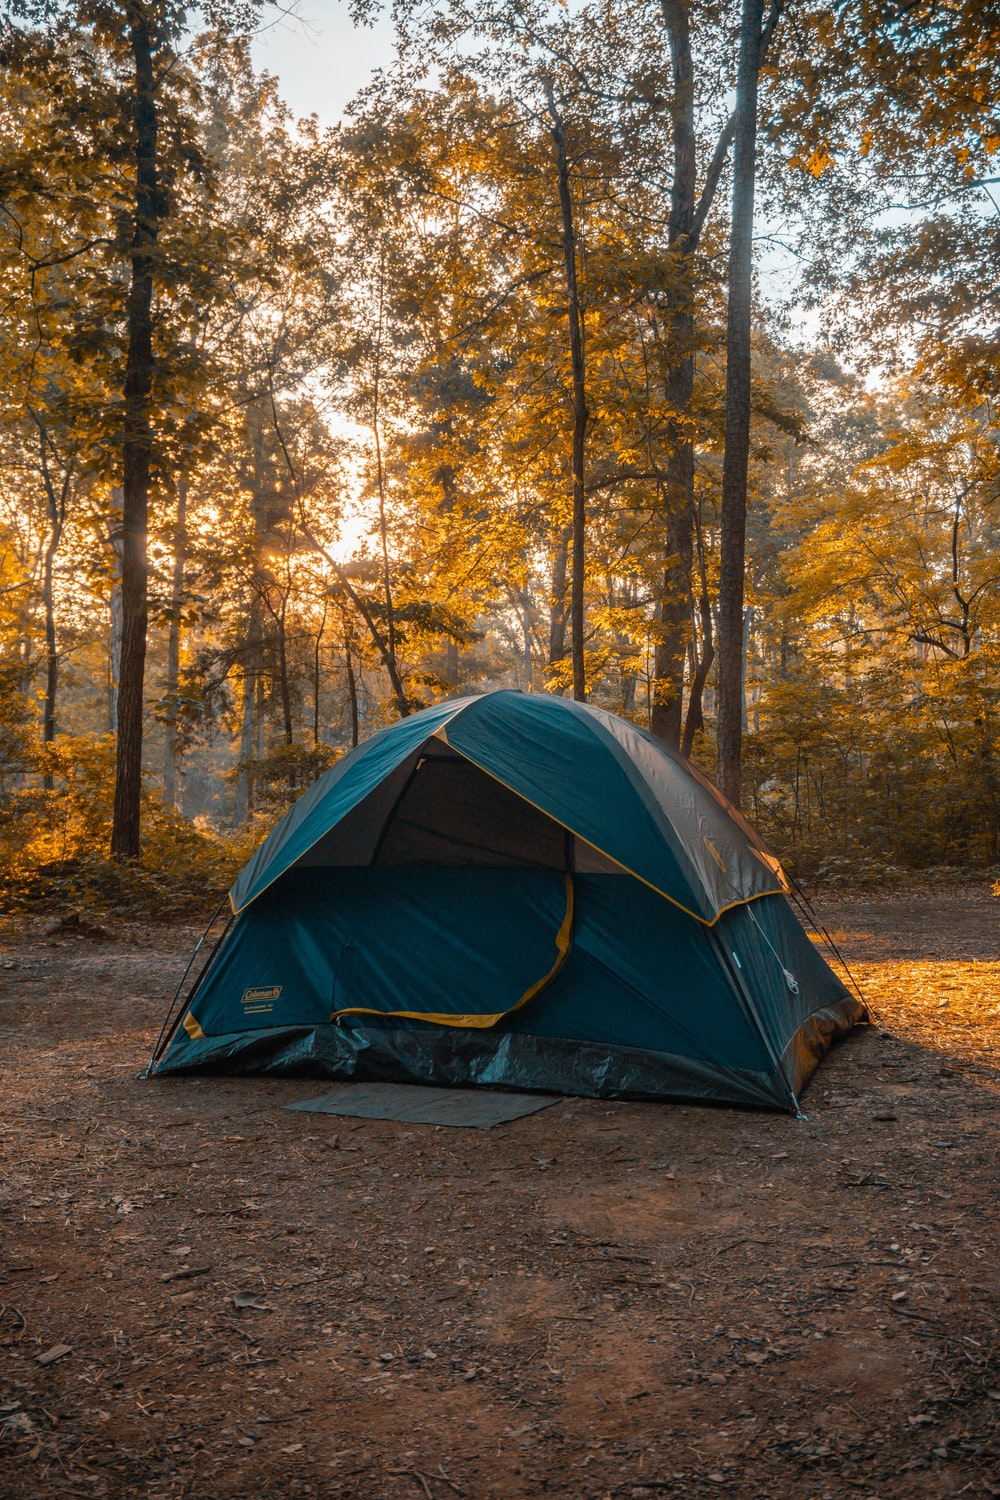 blue and orange dome tent in forest during daytime